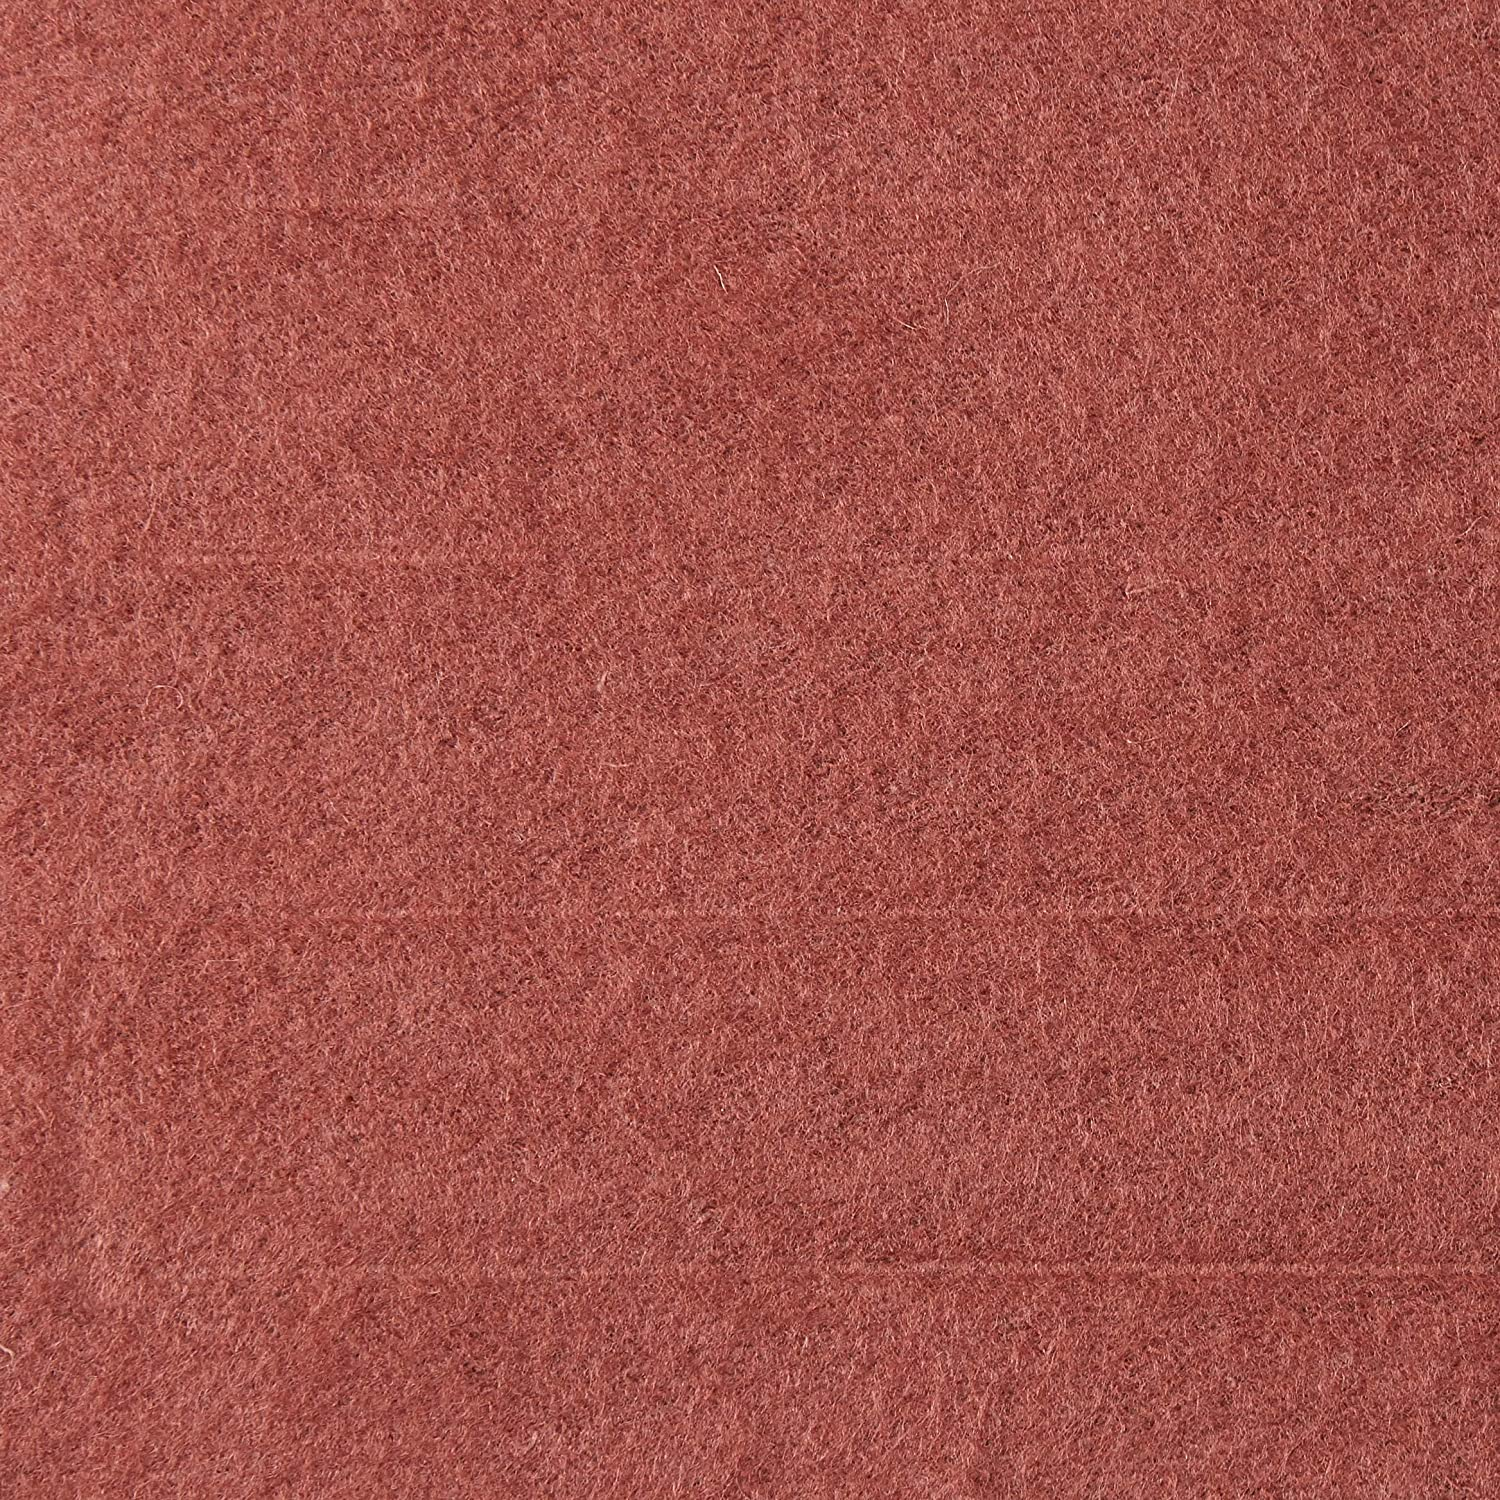 Silk Cotton Lawn woven Fabric HighEnd luxury fabric by the Yard  Leather Brown